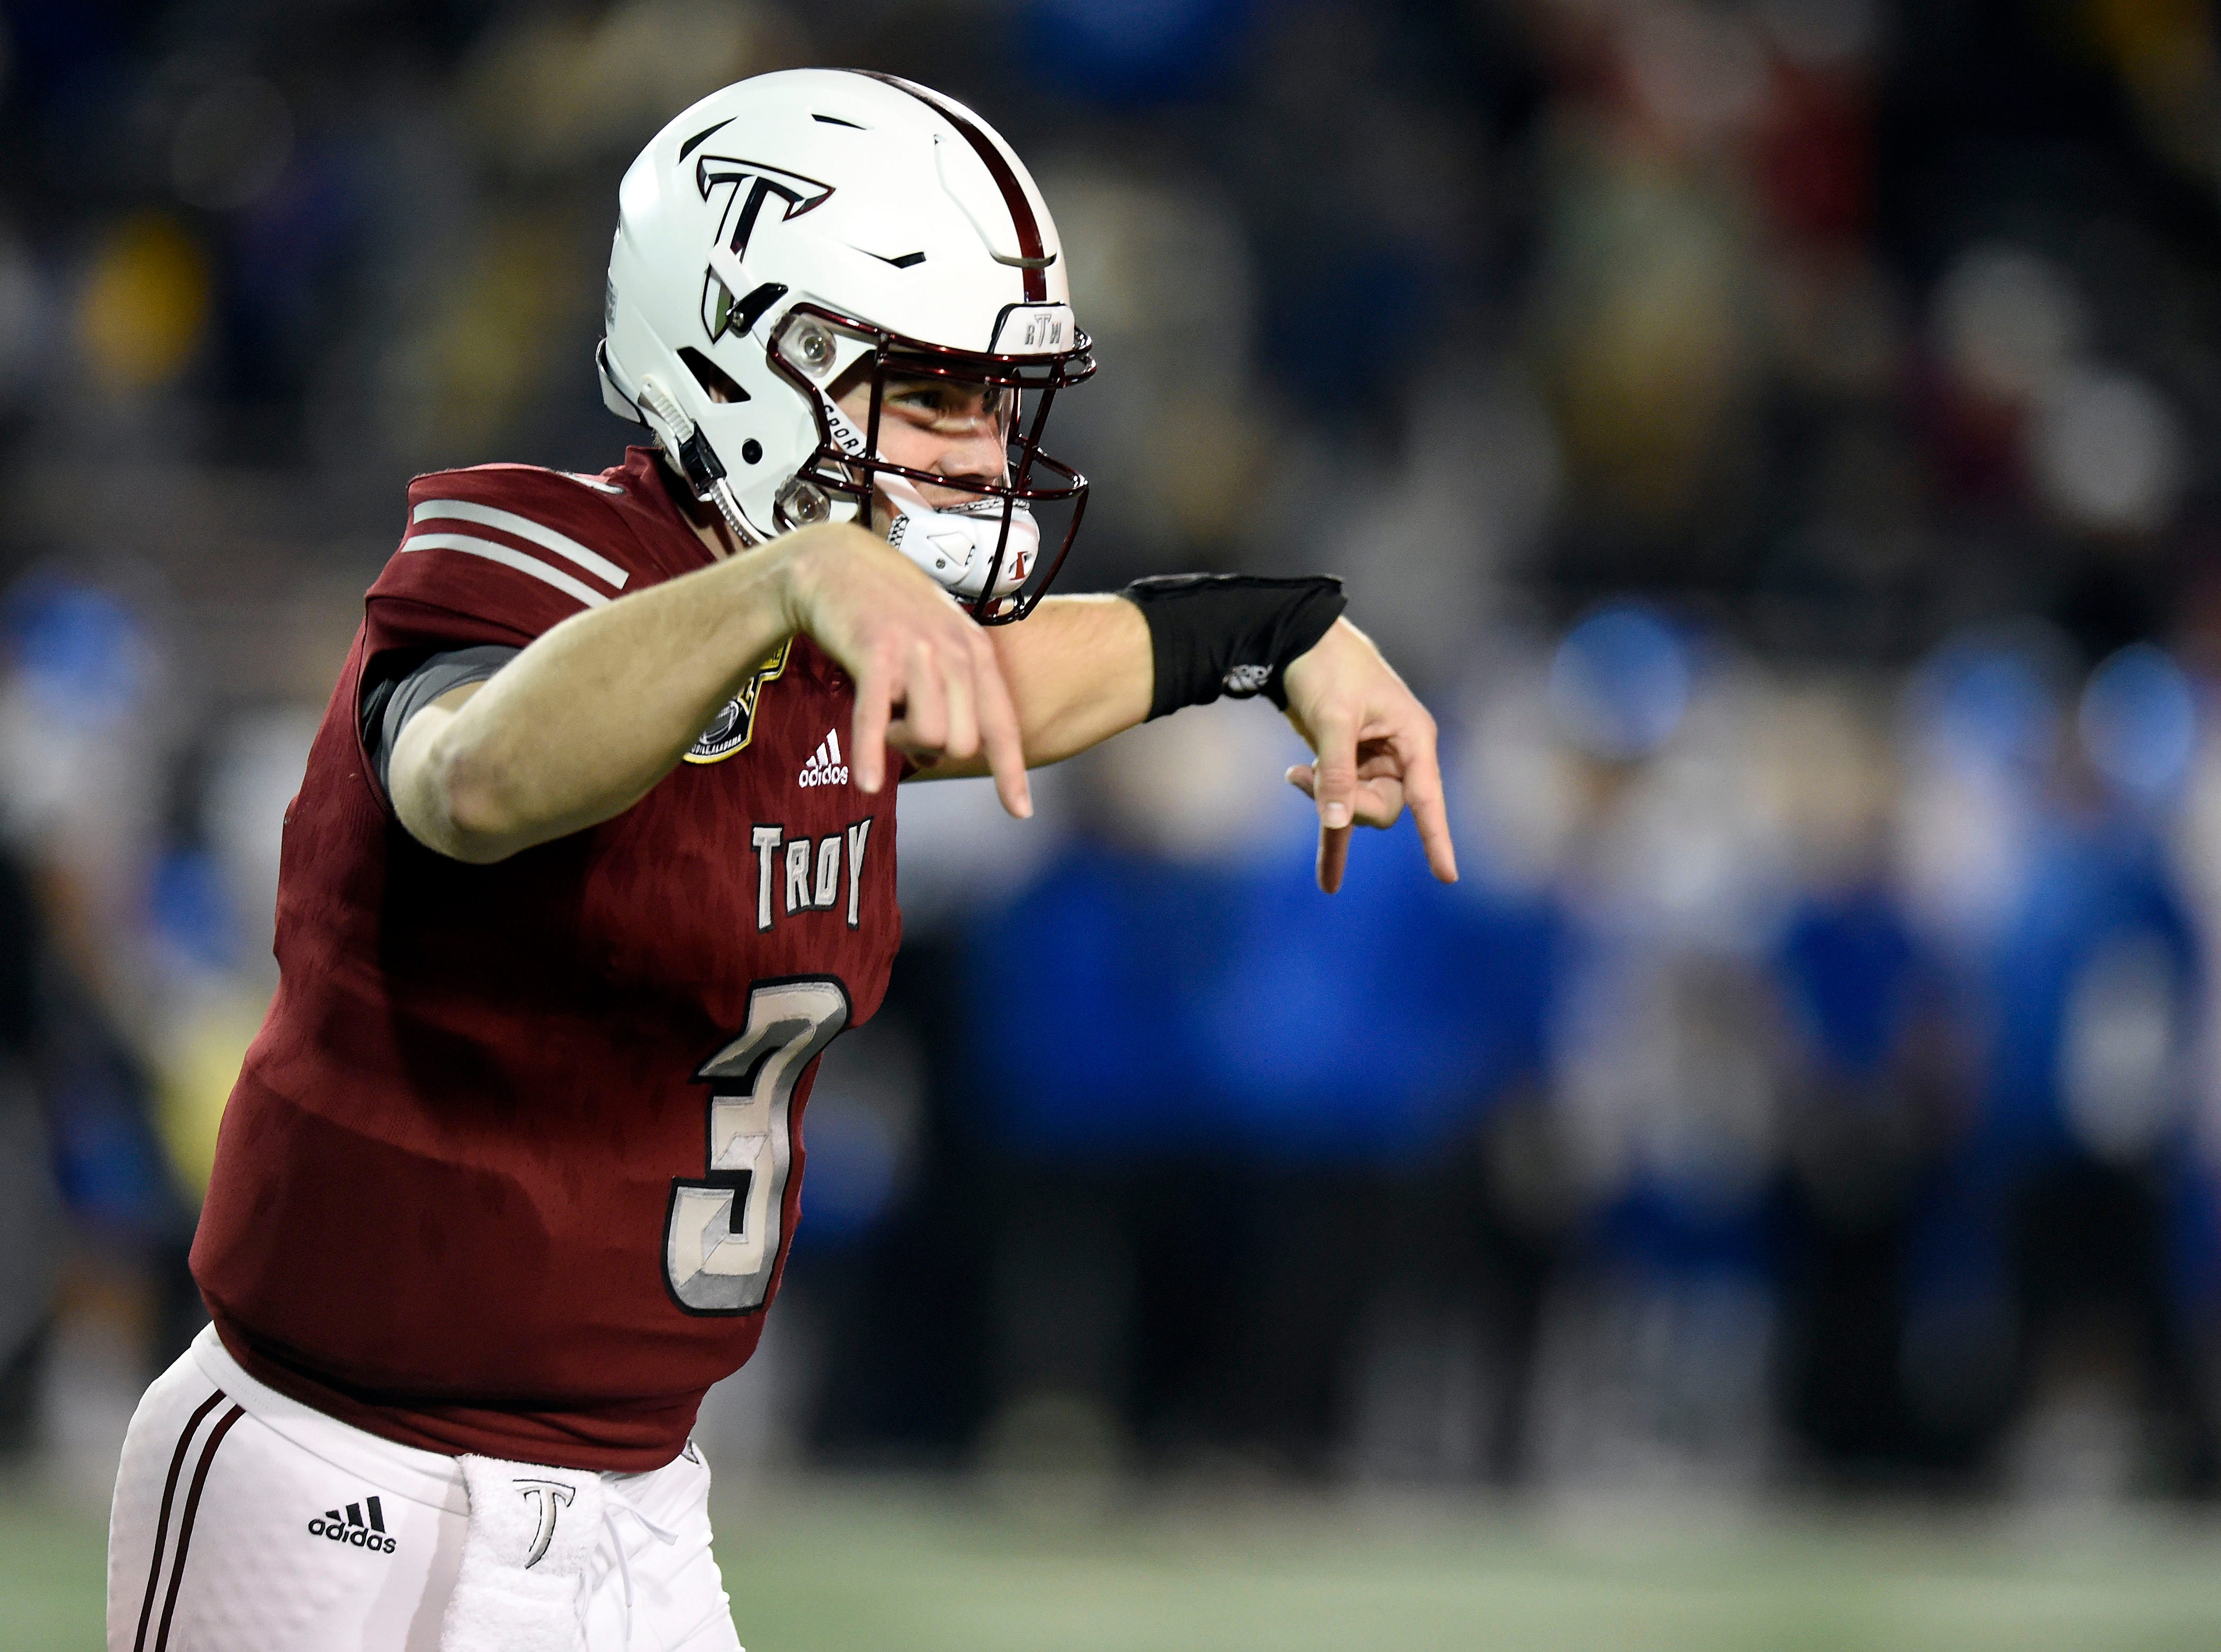 Troy Trojans quarterback Sawyer Smith (3) celebrates his touchdown  pass against the Buffalo Bulls during the first quarter of the Dollar General Bowl.